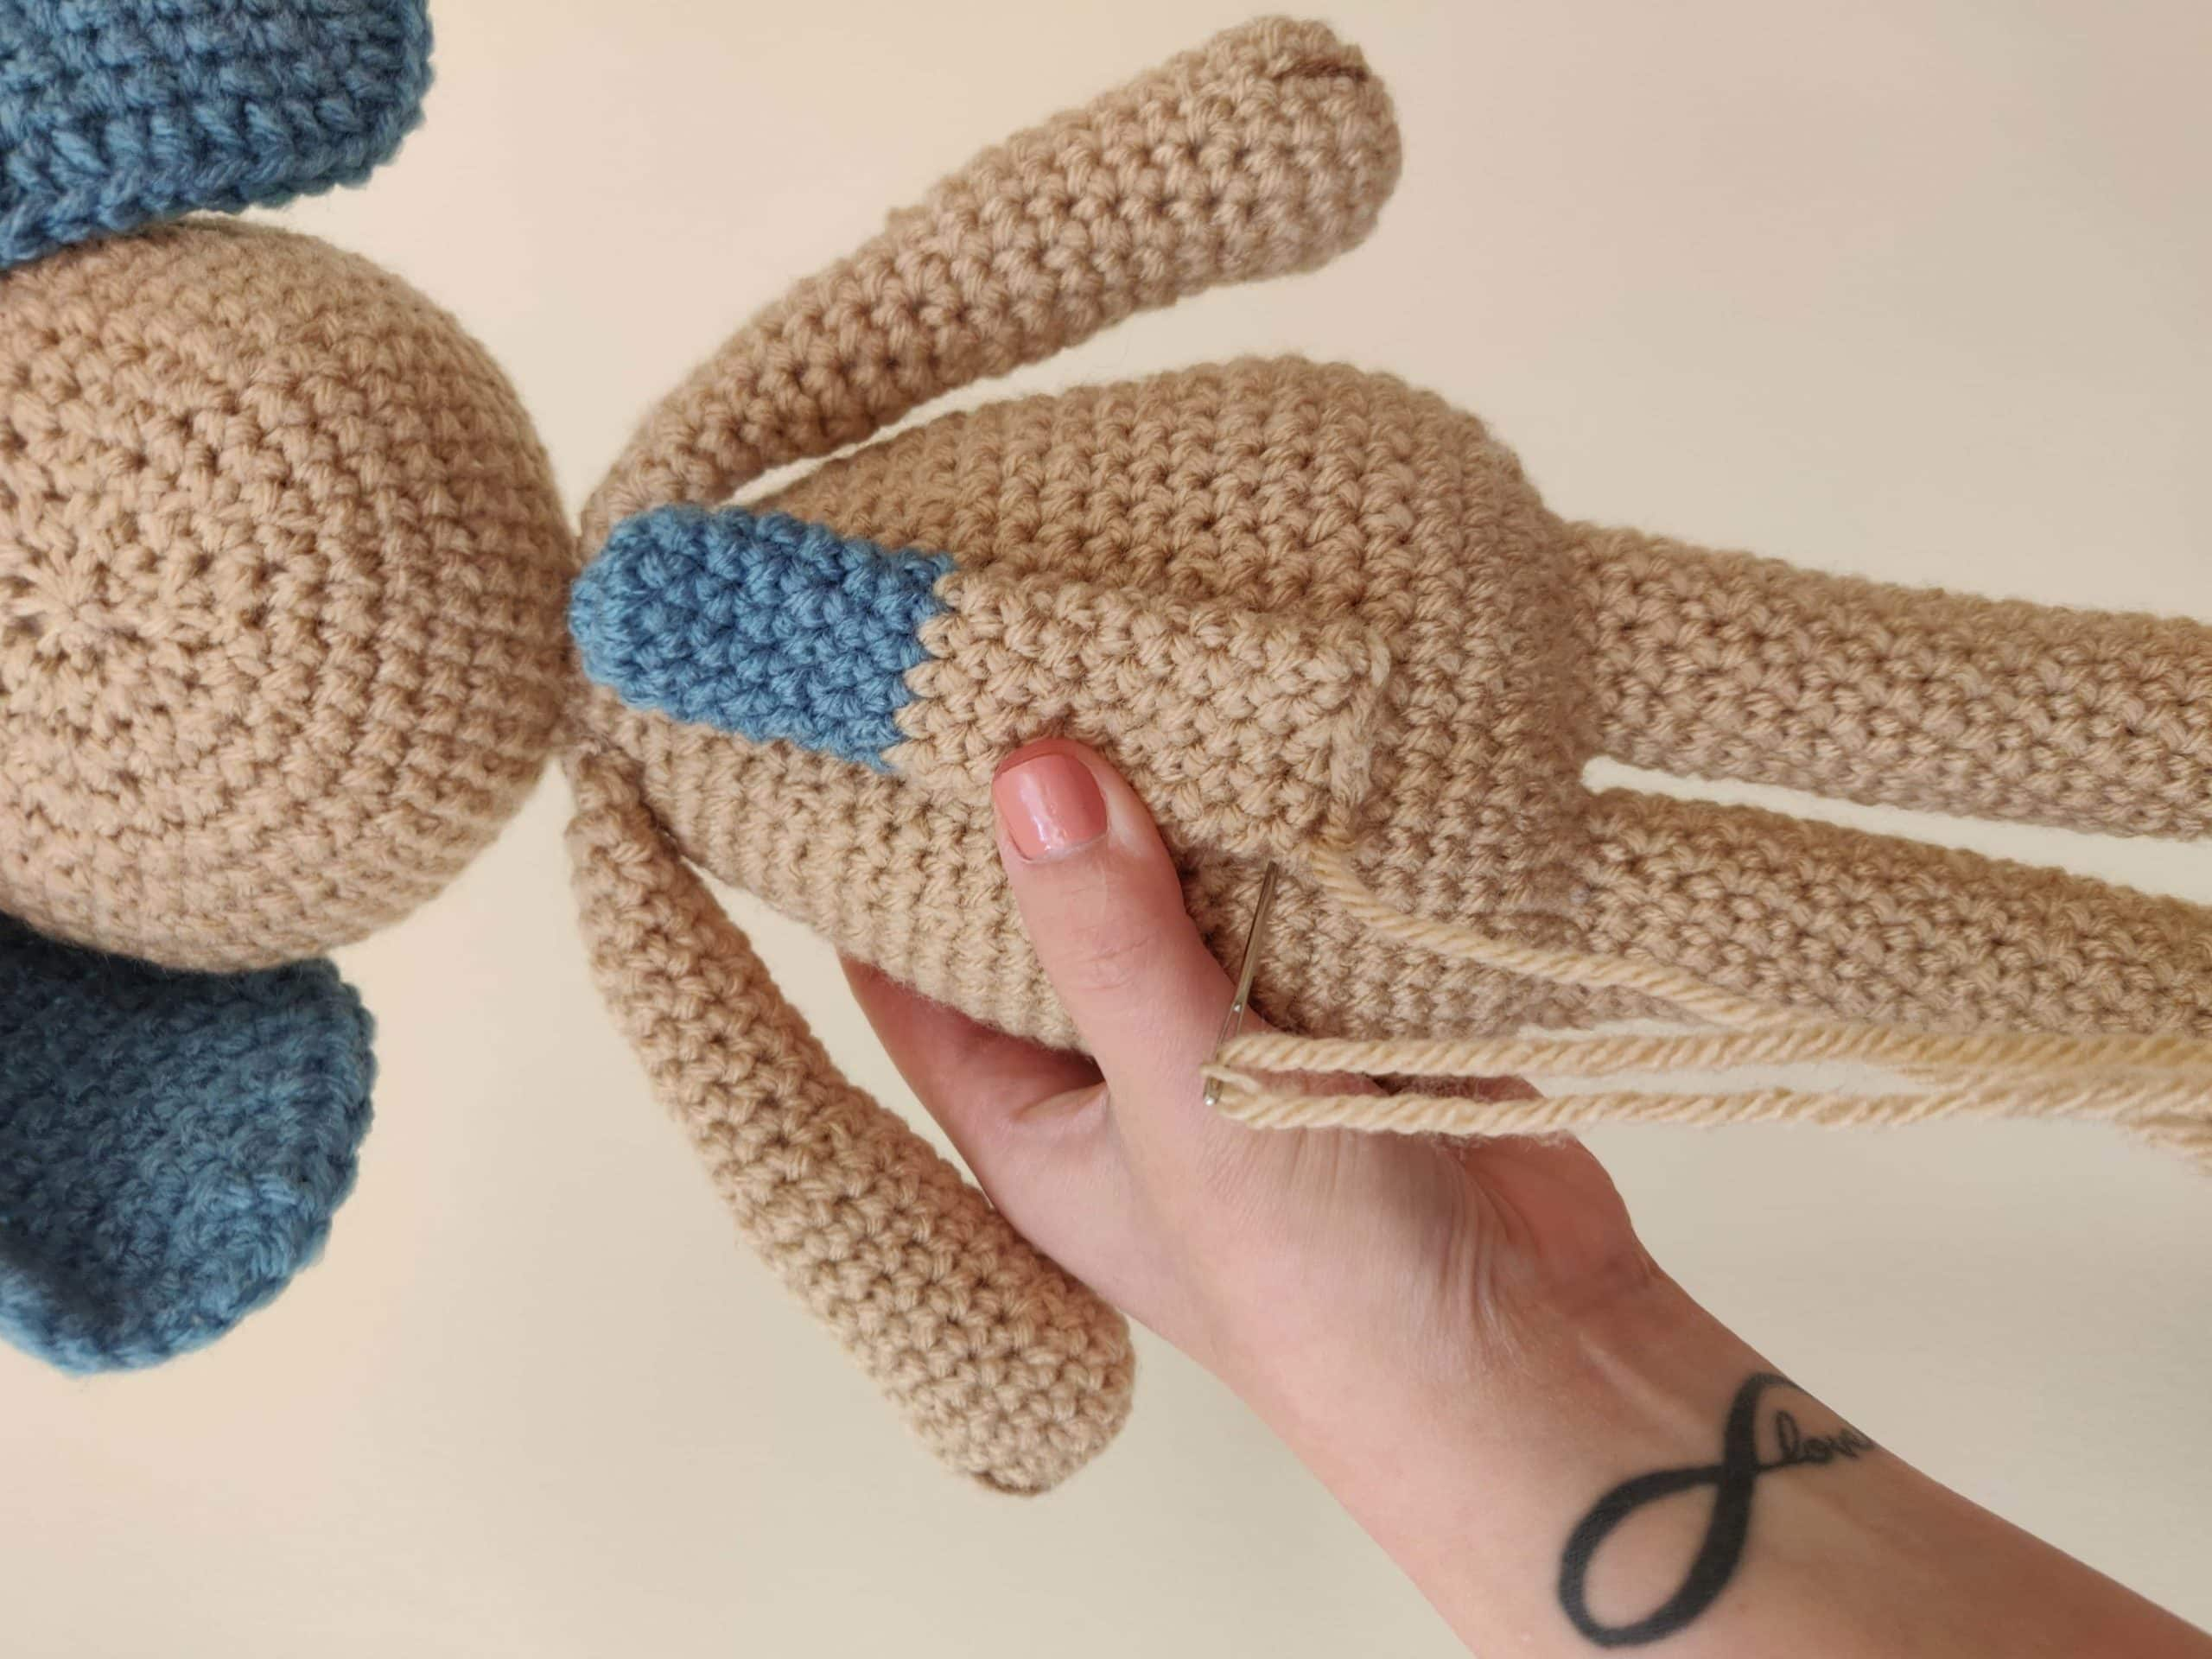 Sewing the tail on the crochet dog.